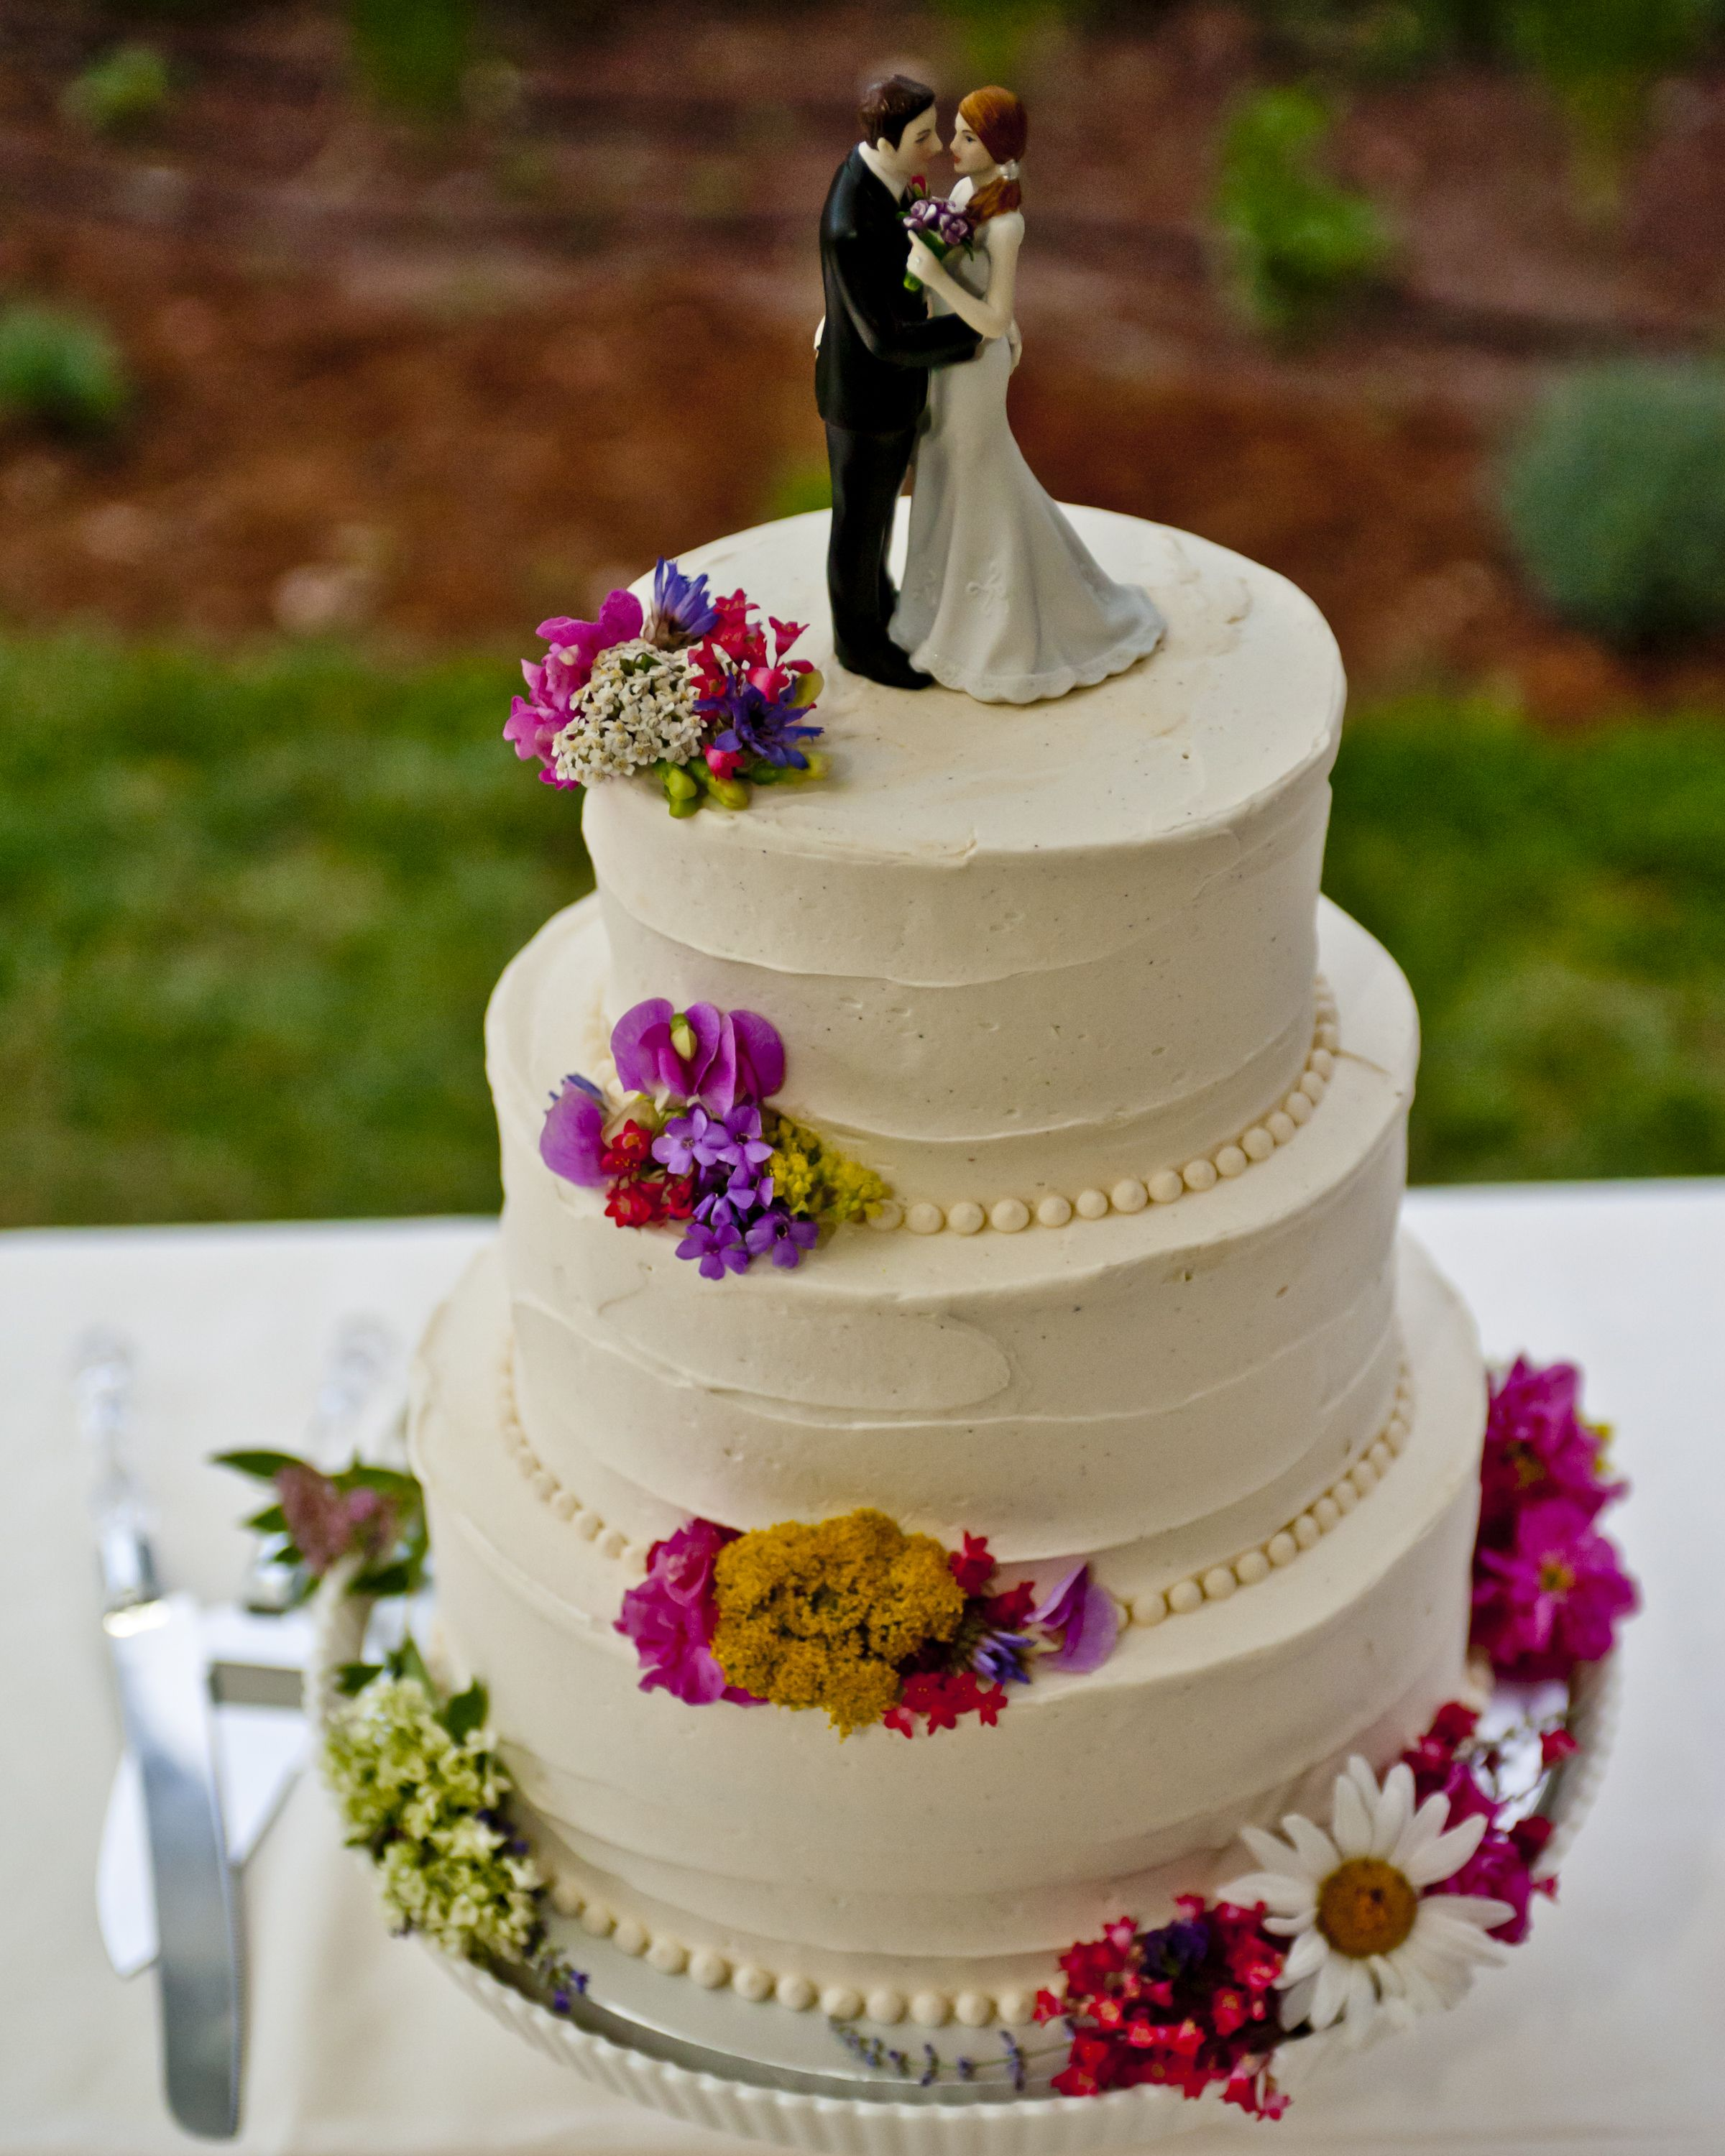 Wedding Cake Ideas Pinterest: Pinterest: Discover And Save Creative Ideas